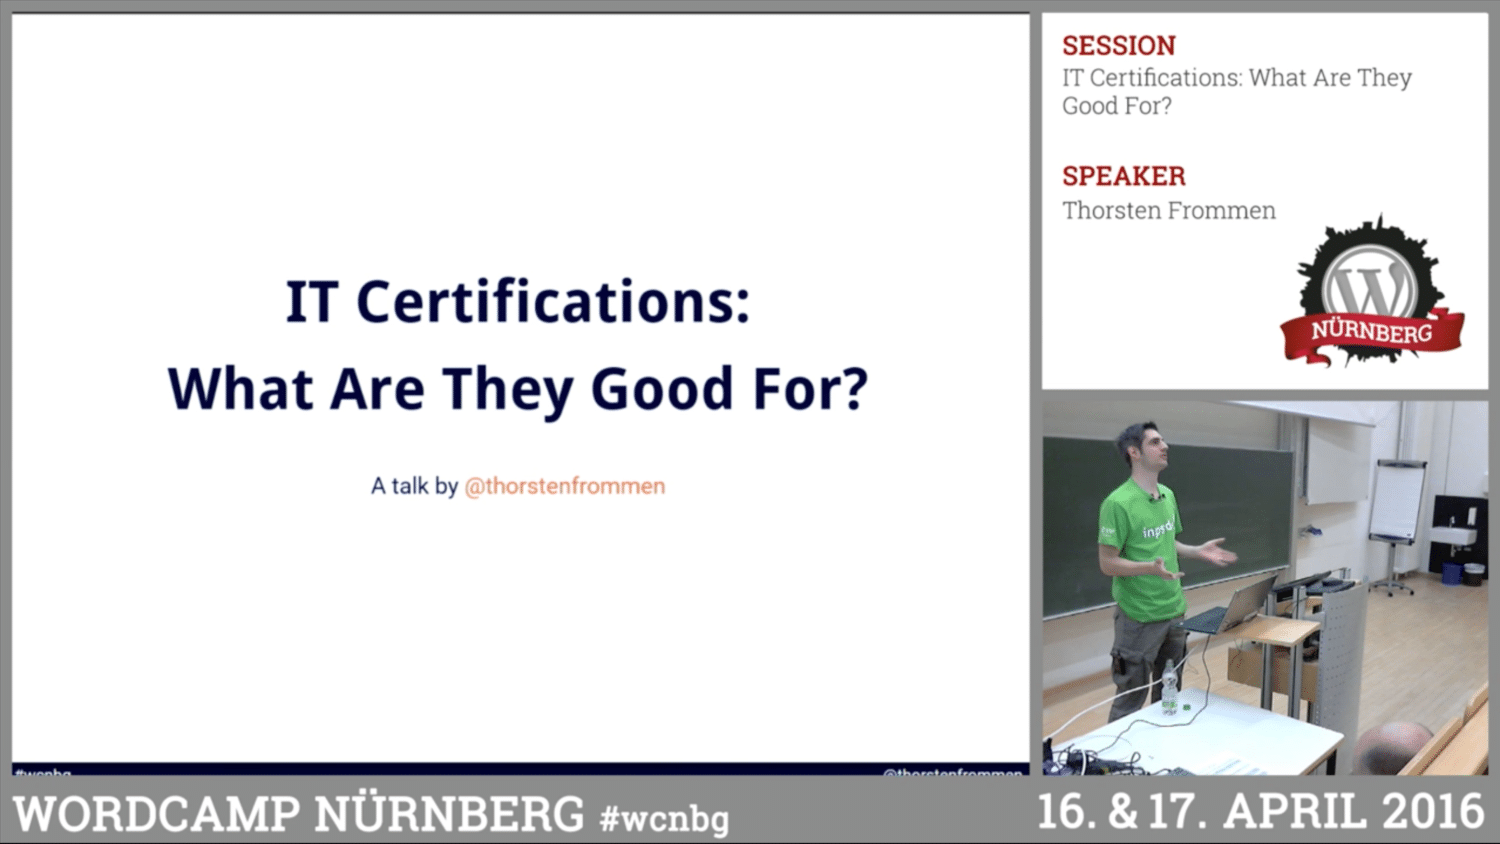 Thorsten Frommen It Certifications What Are They Good For Webschale